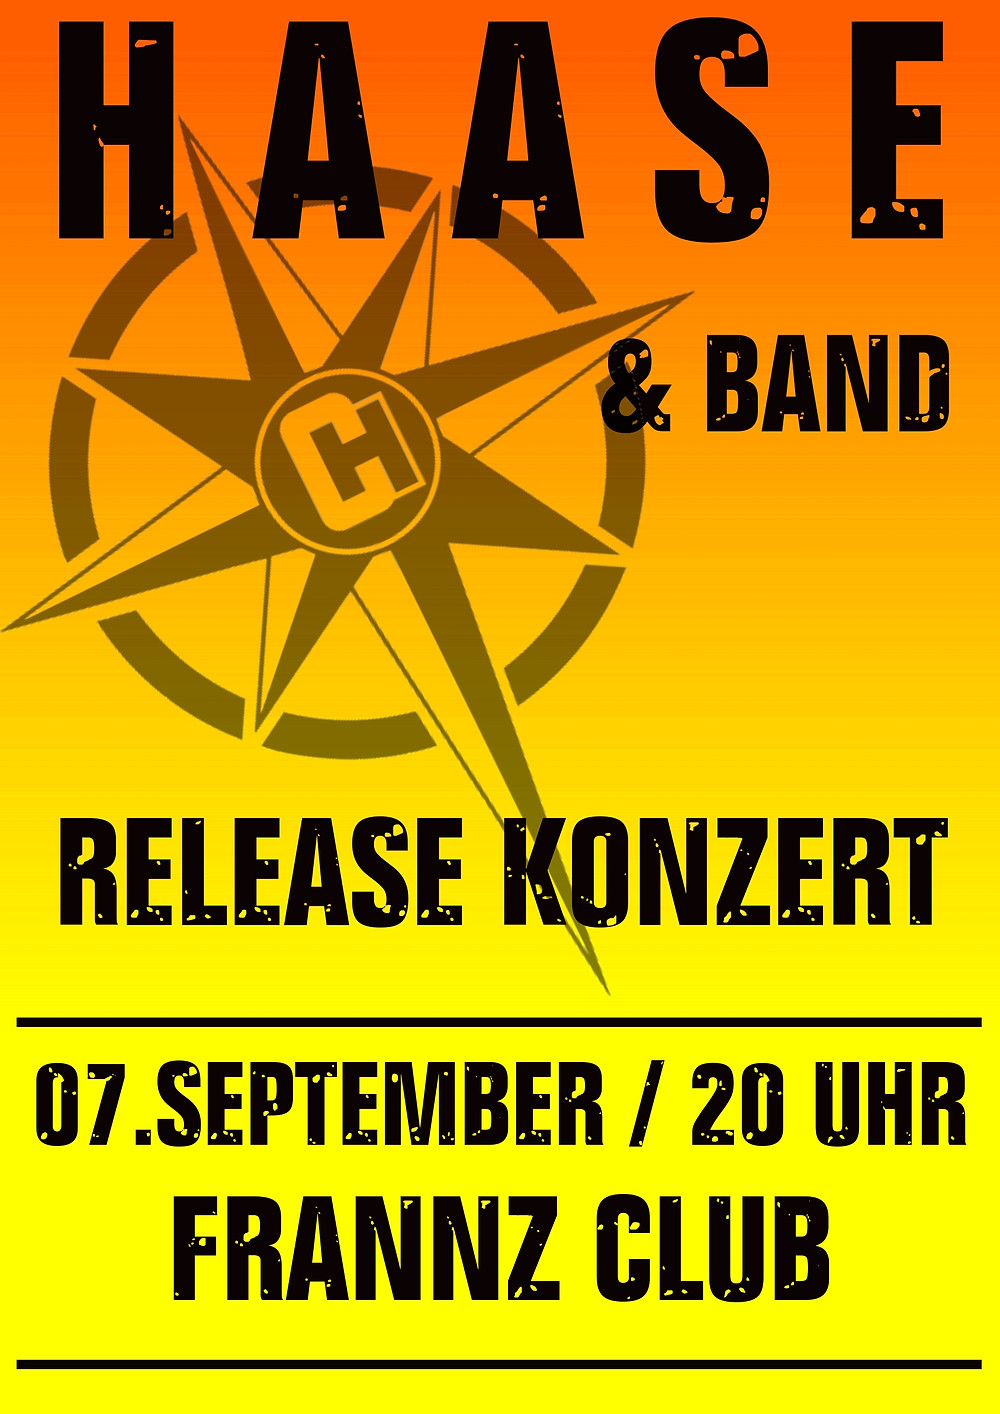 Christian Haase & Band Plakat Frannz Club